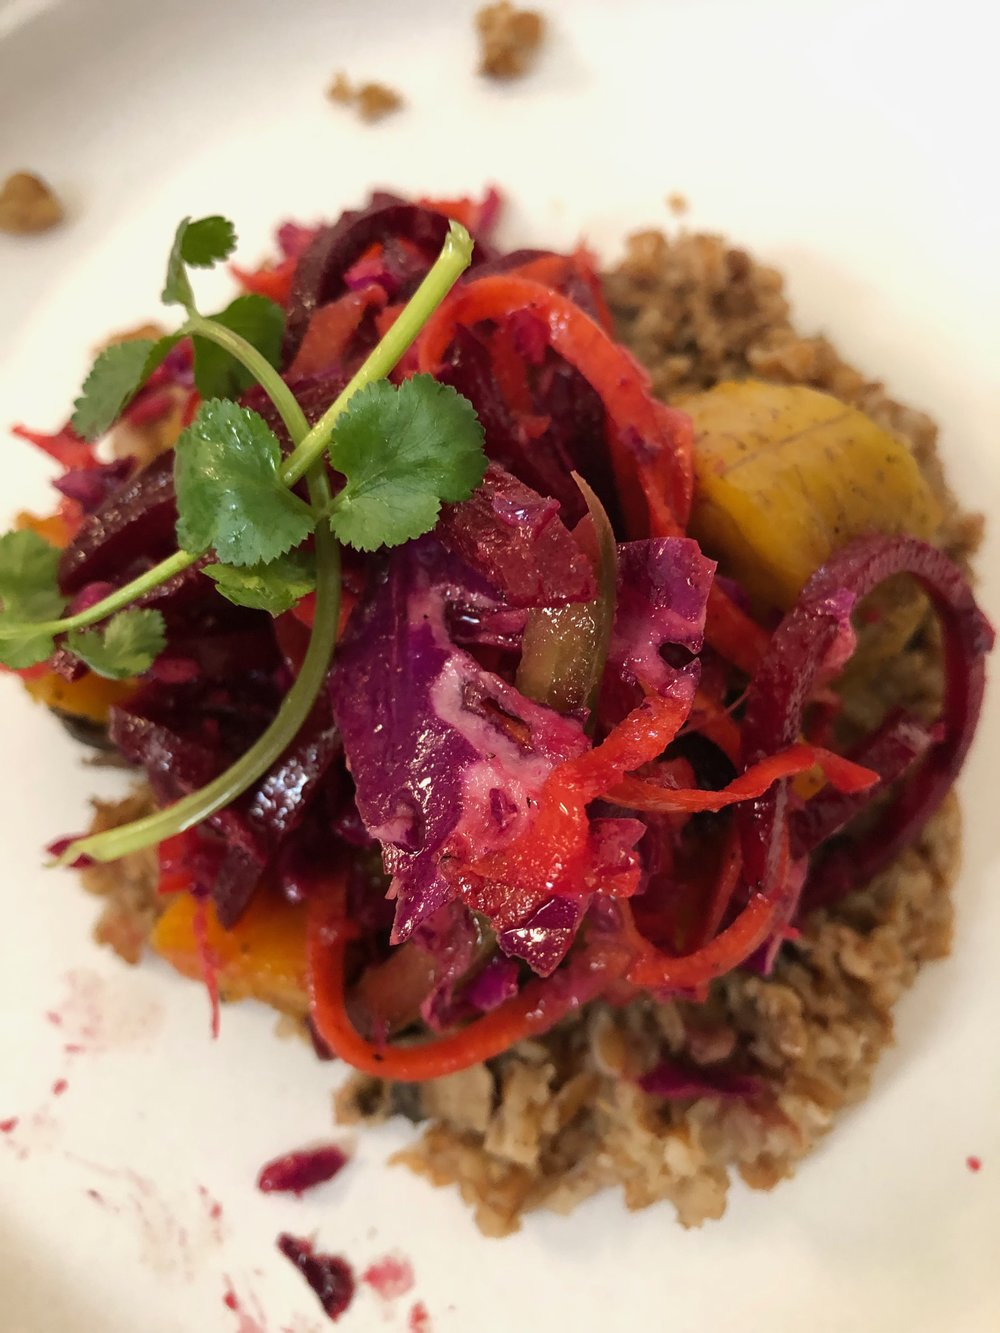 Hearty bulgur and roasted and marinated veggies from  Brooklyn Packers  and a team of community chefs.